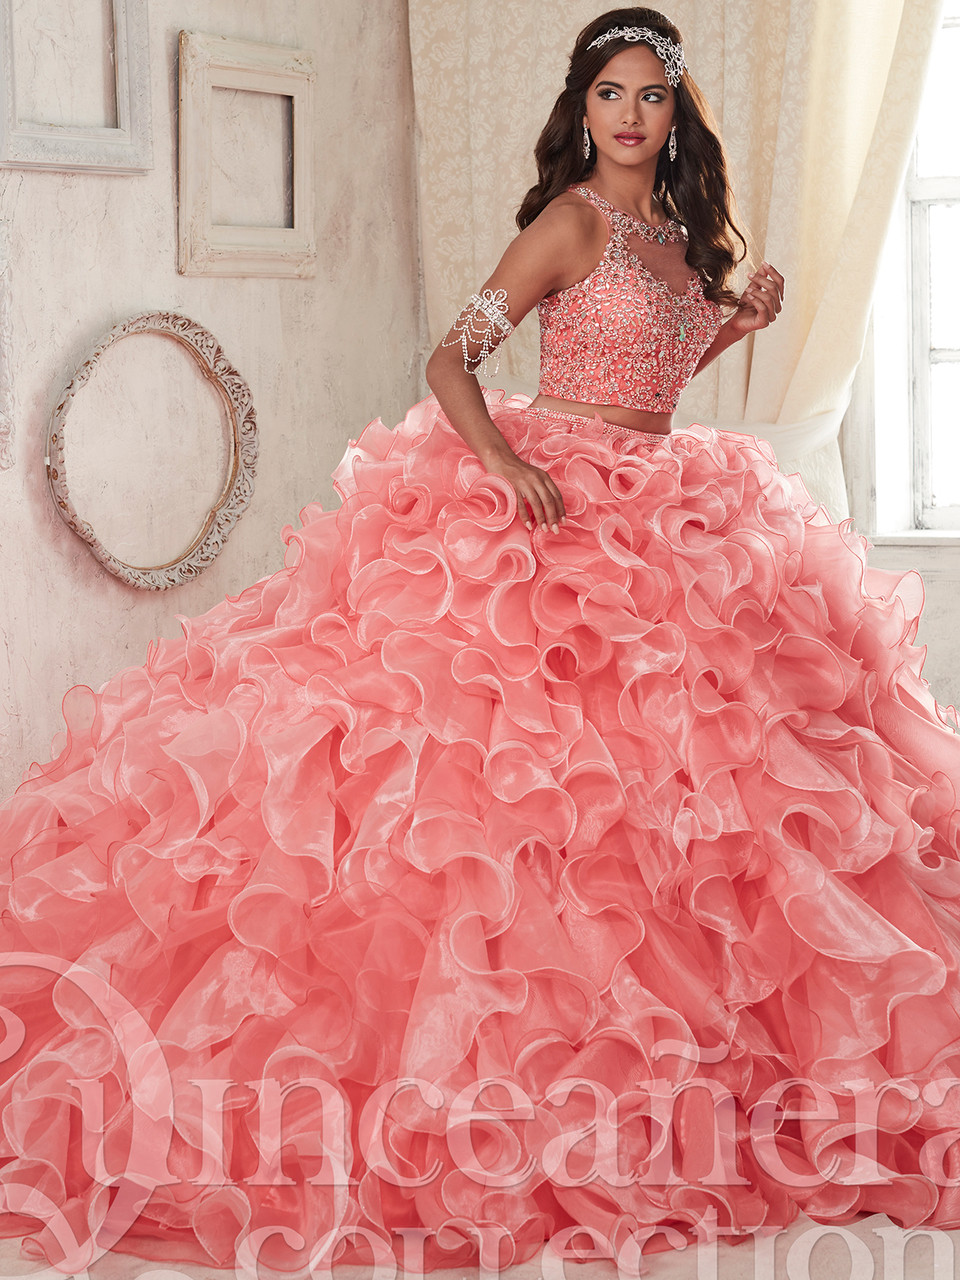 7517356036e Two piece quinceanera dress with ruffle skirt tiffany 26830